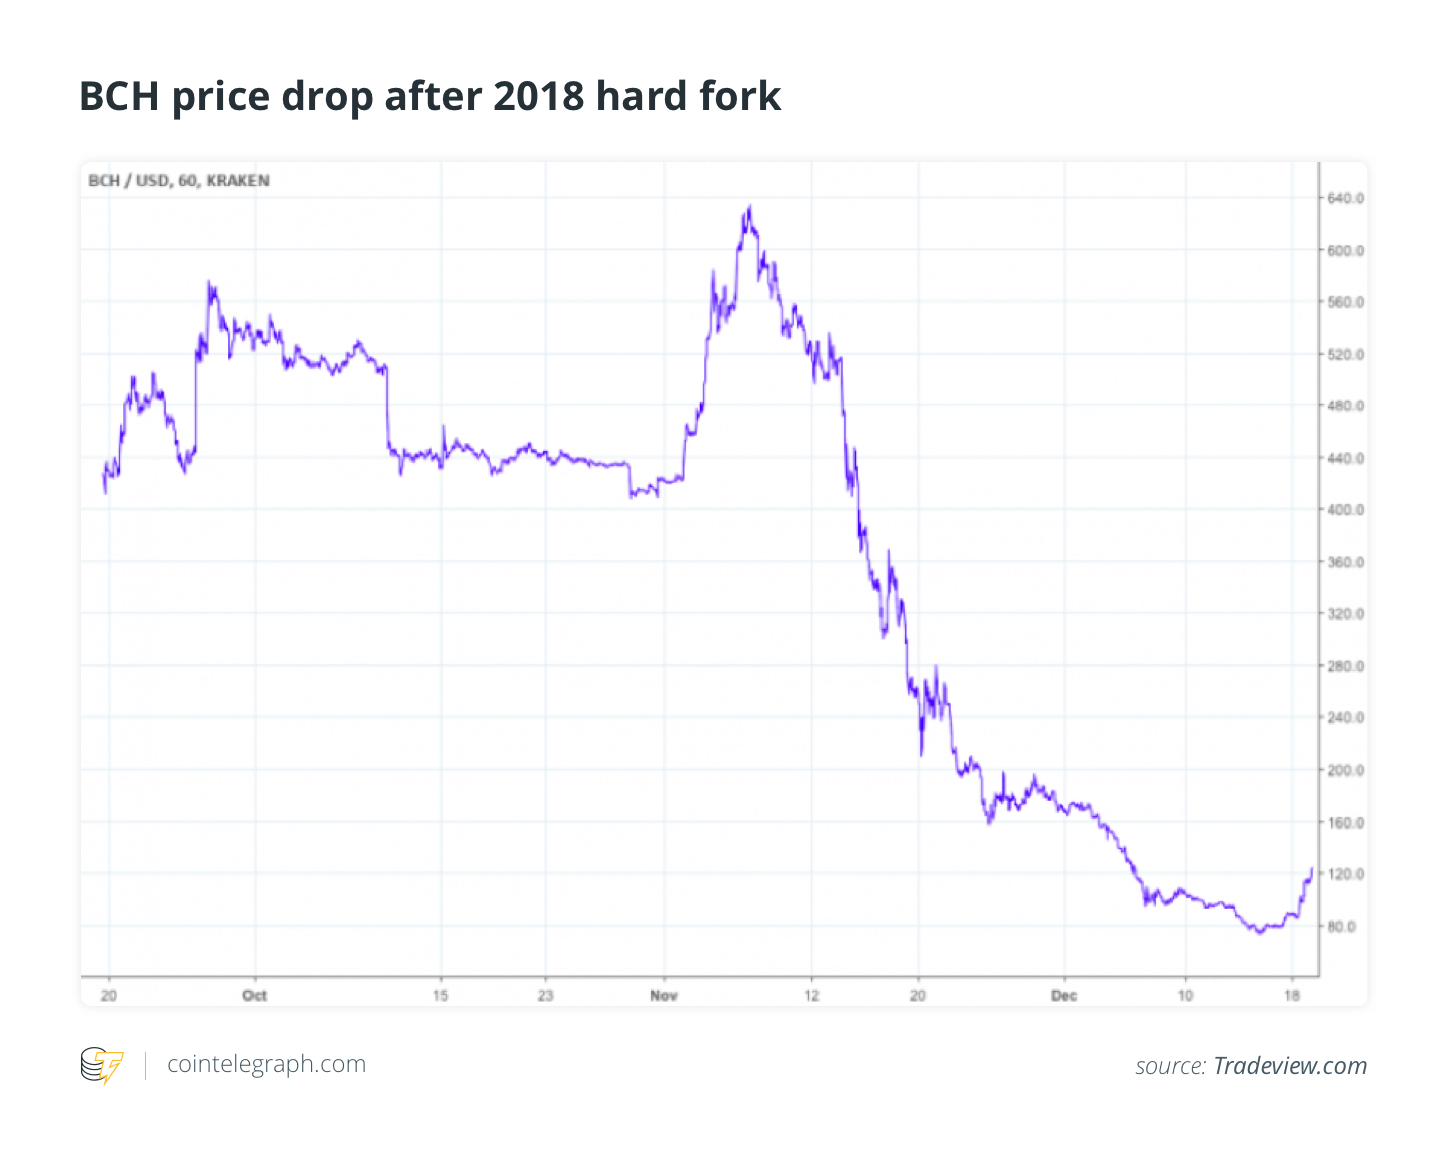 BCH price drop after 2018 hard fork